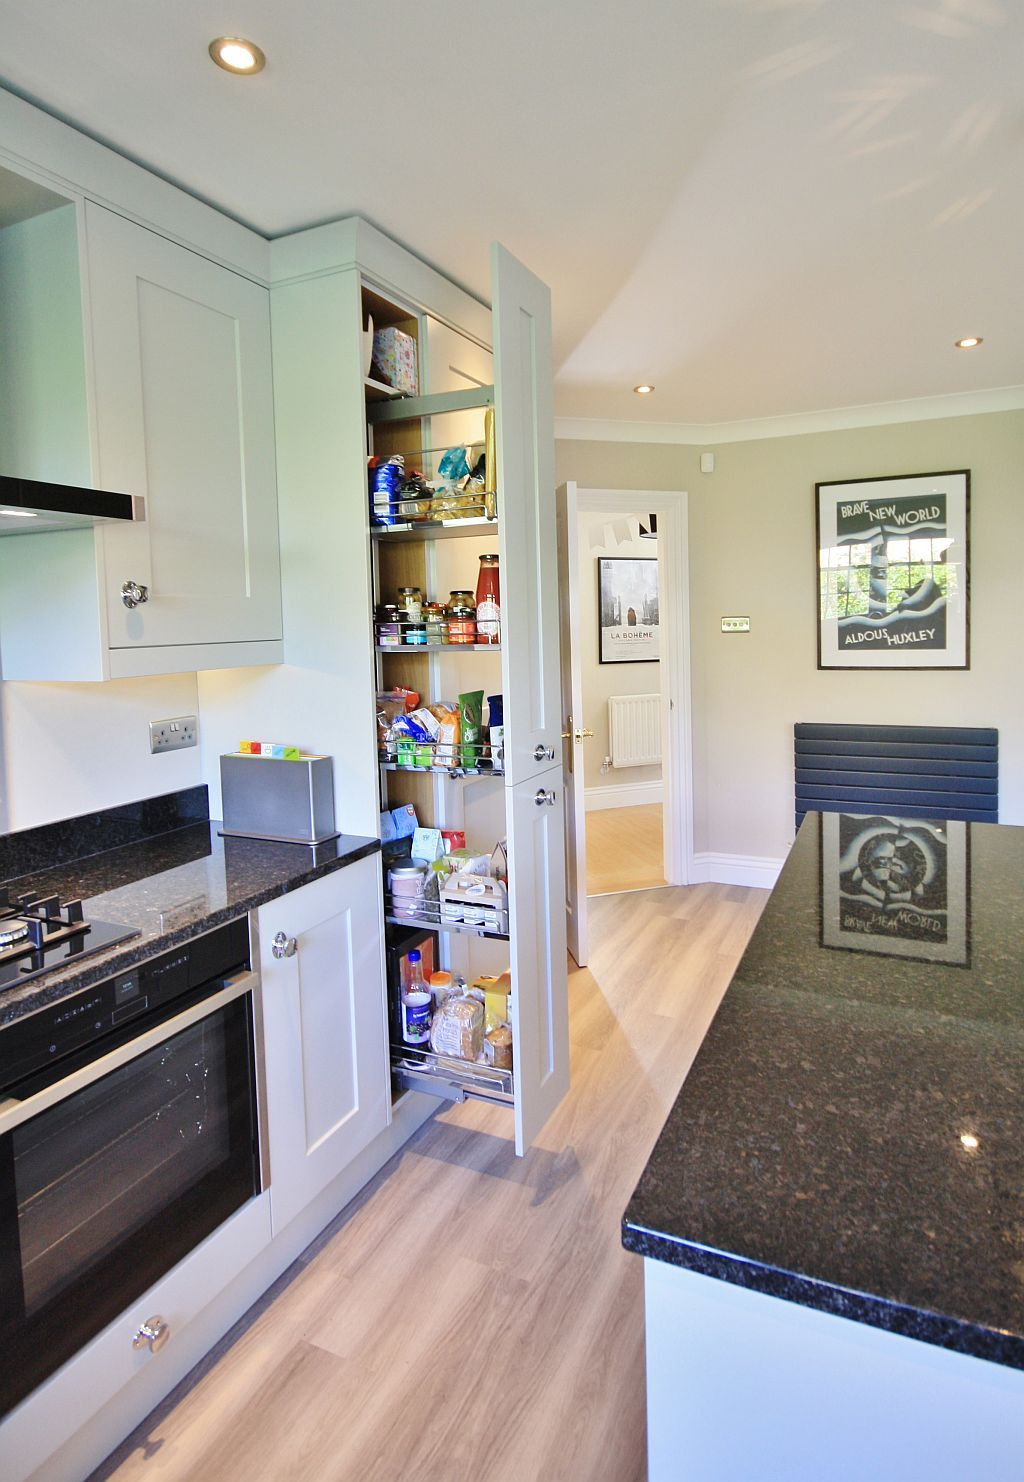 Exceptionnel Grey Kitchen Design With Pull Out Larder Chelmsford, Essex